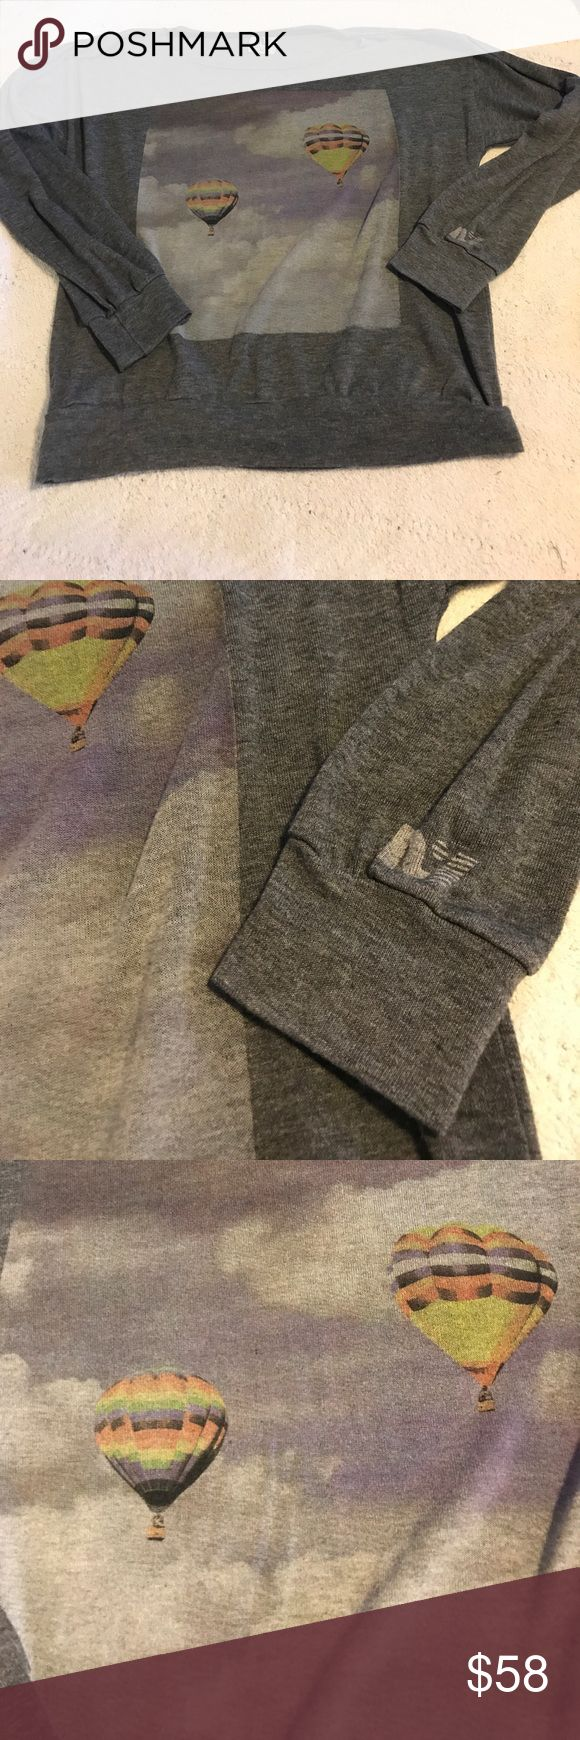 Rebel Yell sweater NEW LISTING! REBEL YELL sweater. Adorable sweater that is so soft and comfy. Very flattering too! Lots of stretch. Tag says medium but could fit up to an XL. GRAY. Excellent pre loved condition from smoke free home. Worn once. Bin M Rebel Yell Sweaters